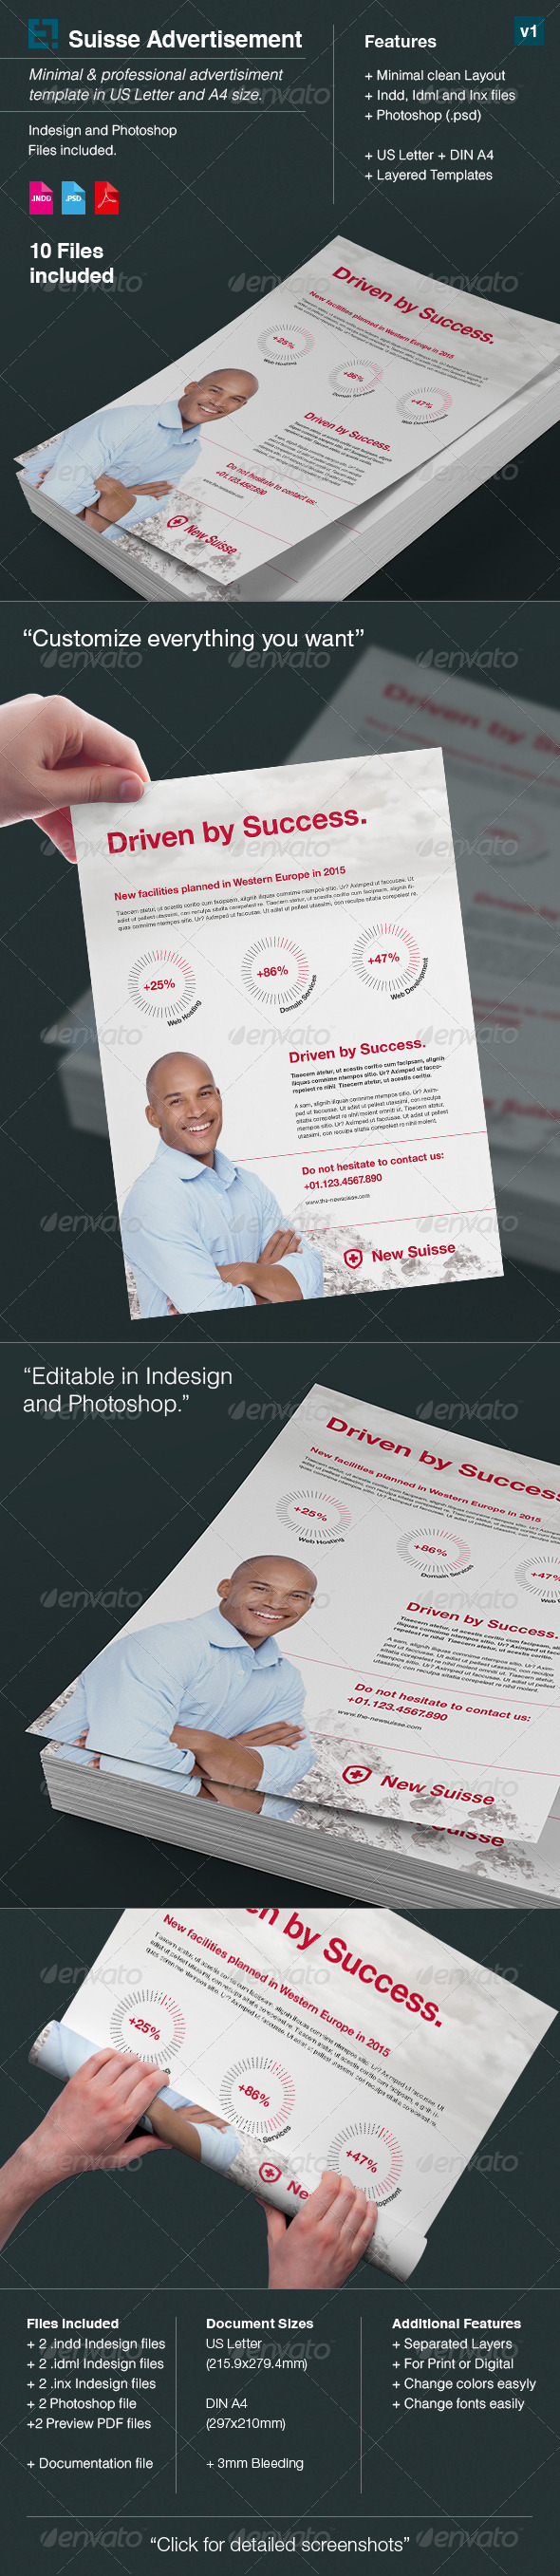 GraphicRiver Suisse Corporate Advert US Letter A4 v1 7795315